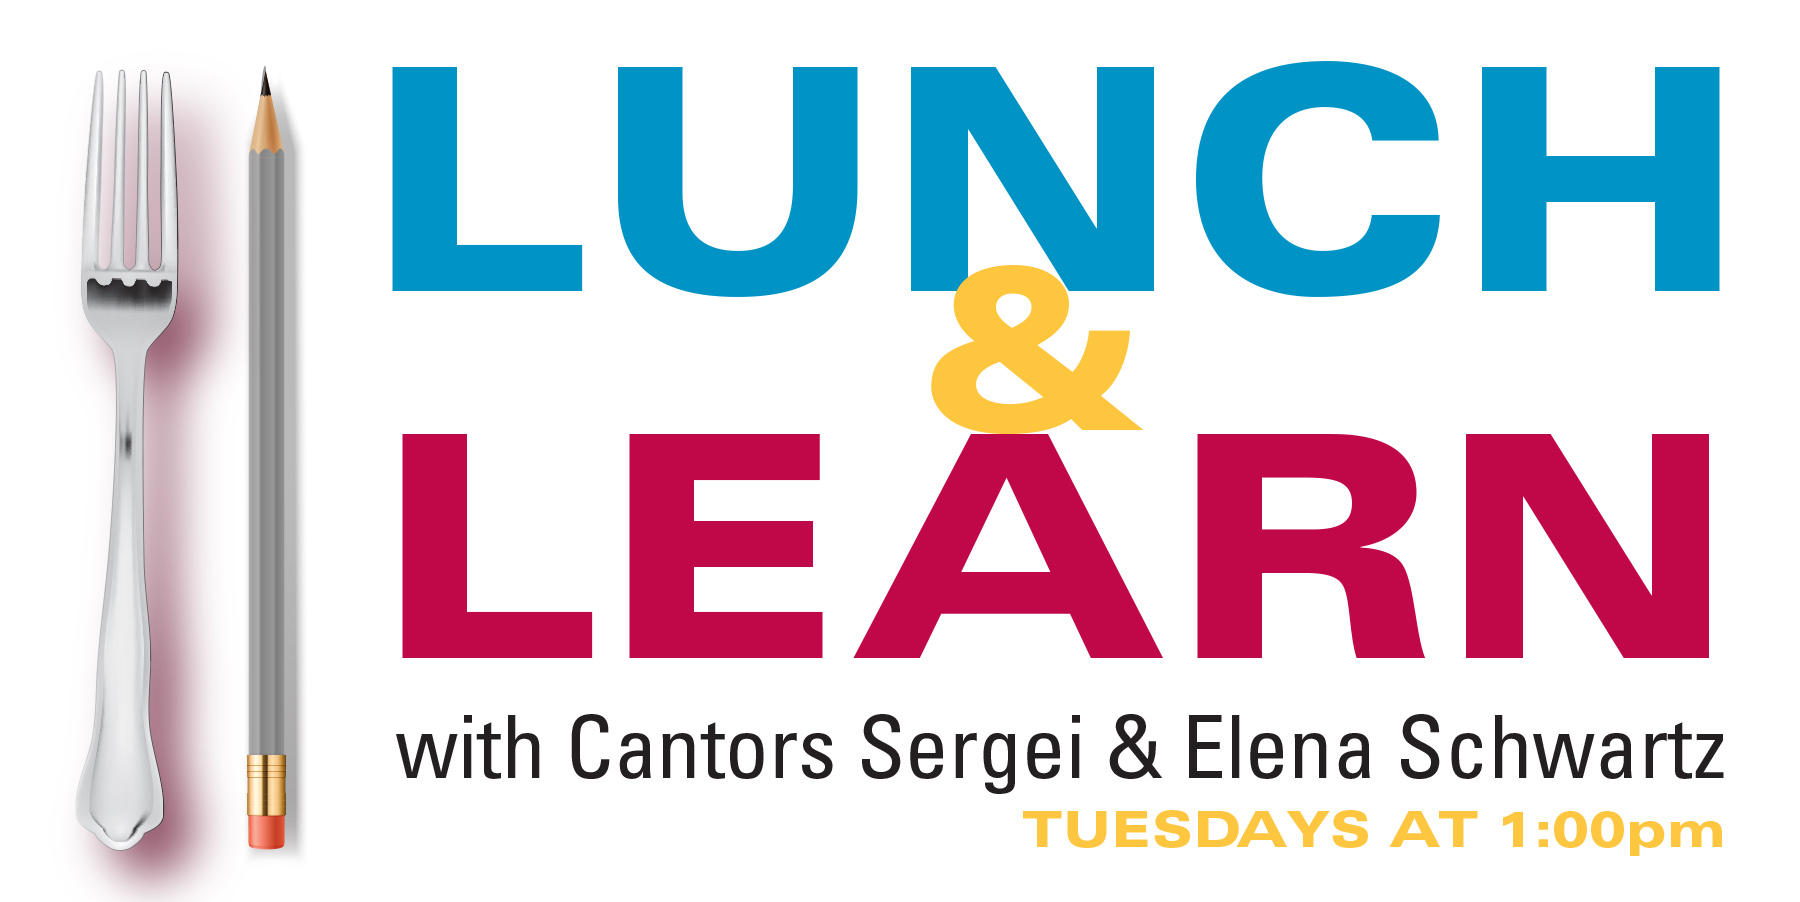 Banner Image for Lunch & Learn with Cantors Sergei & Elena Schwartz